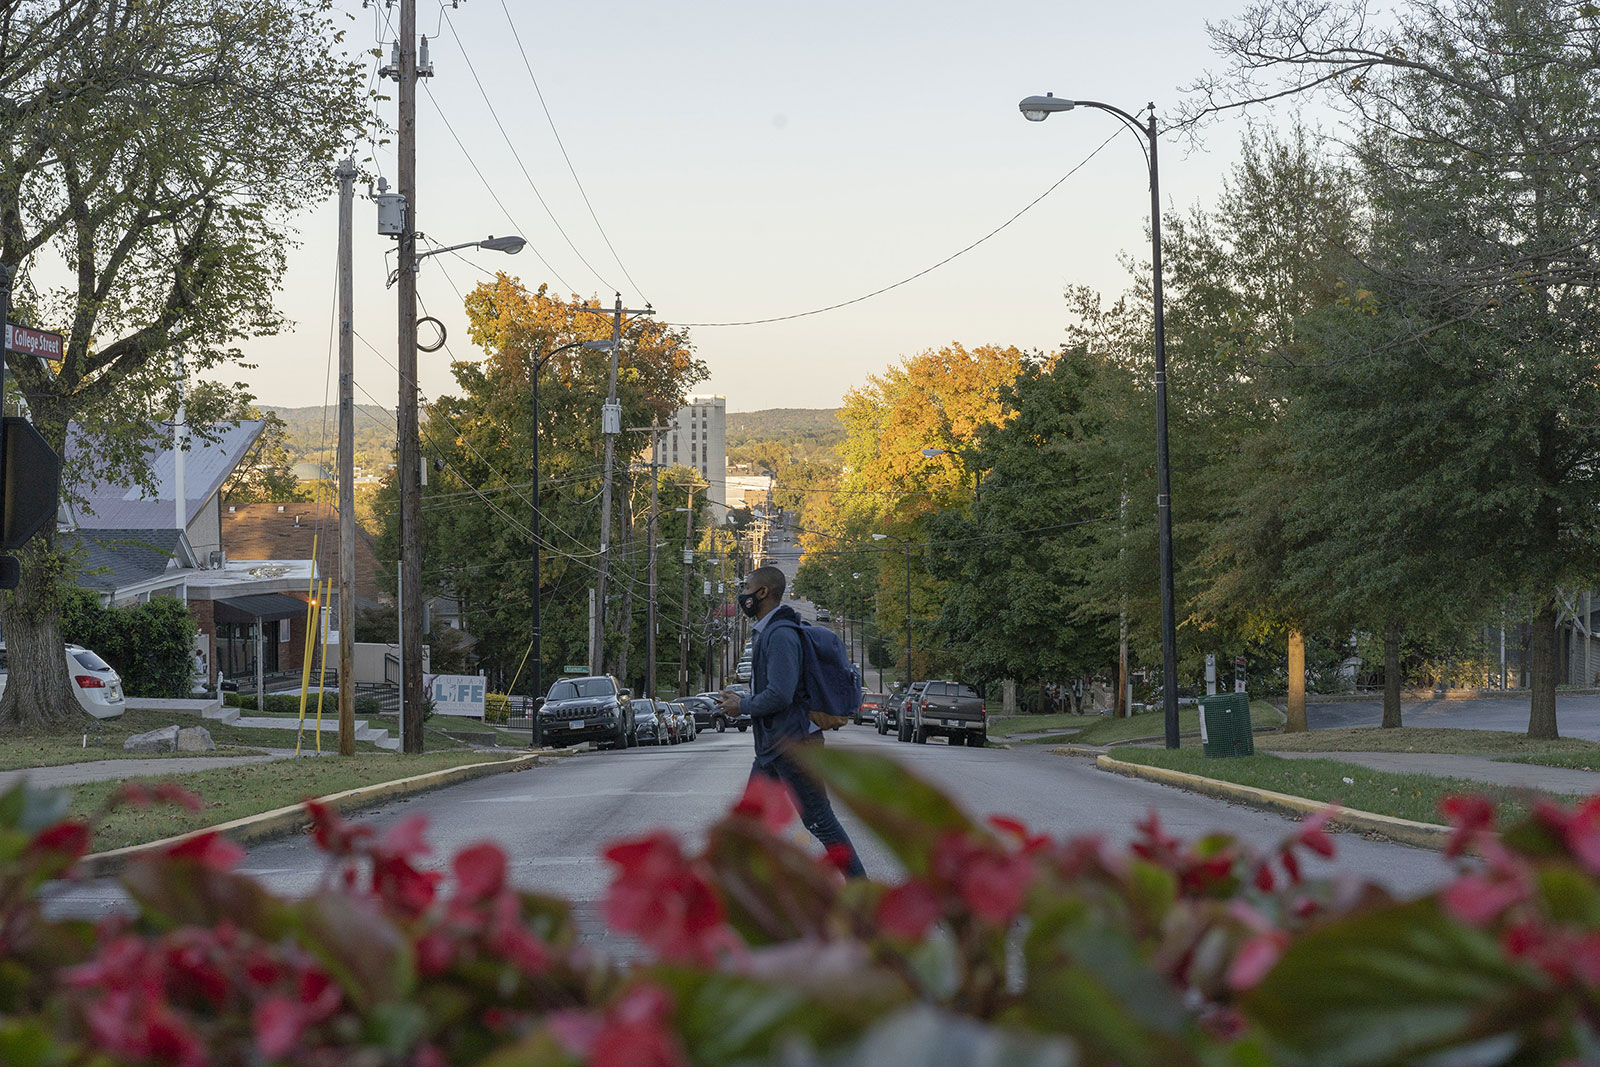 A person wearing a mask crosses the street in Bowling Green, Kentucky, on October 16.